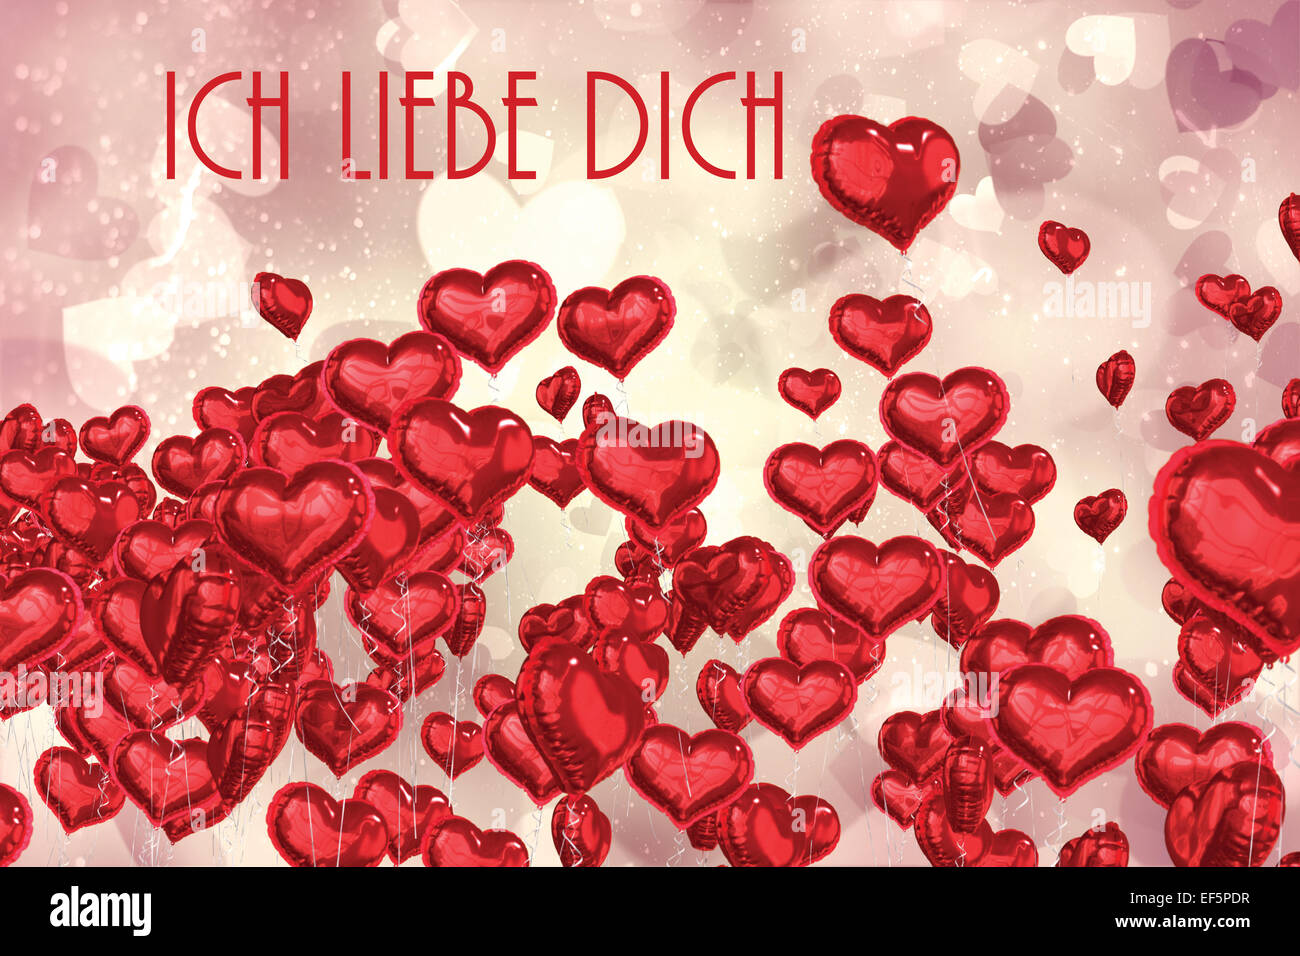 Composite image of ich liebe dich - Stock Image